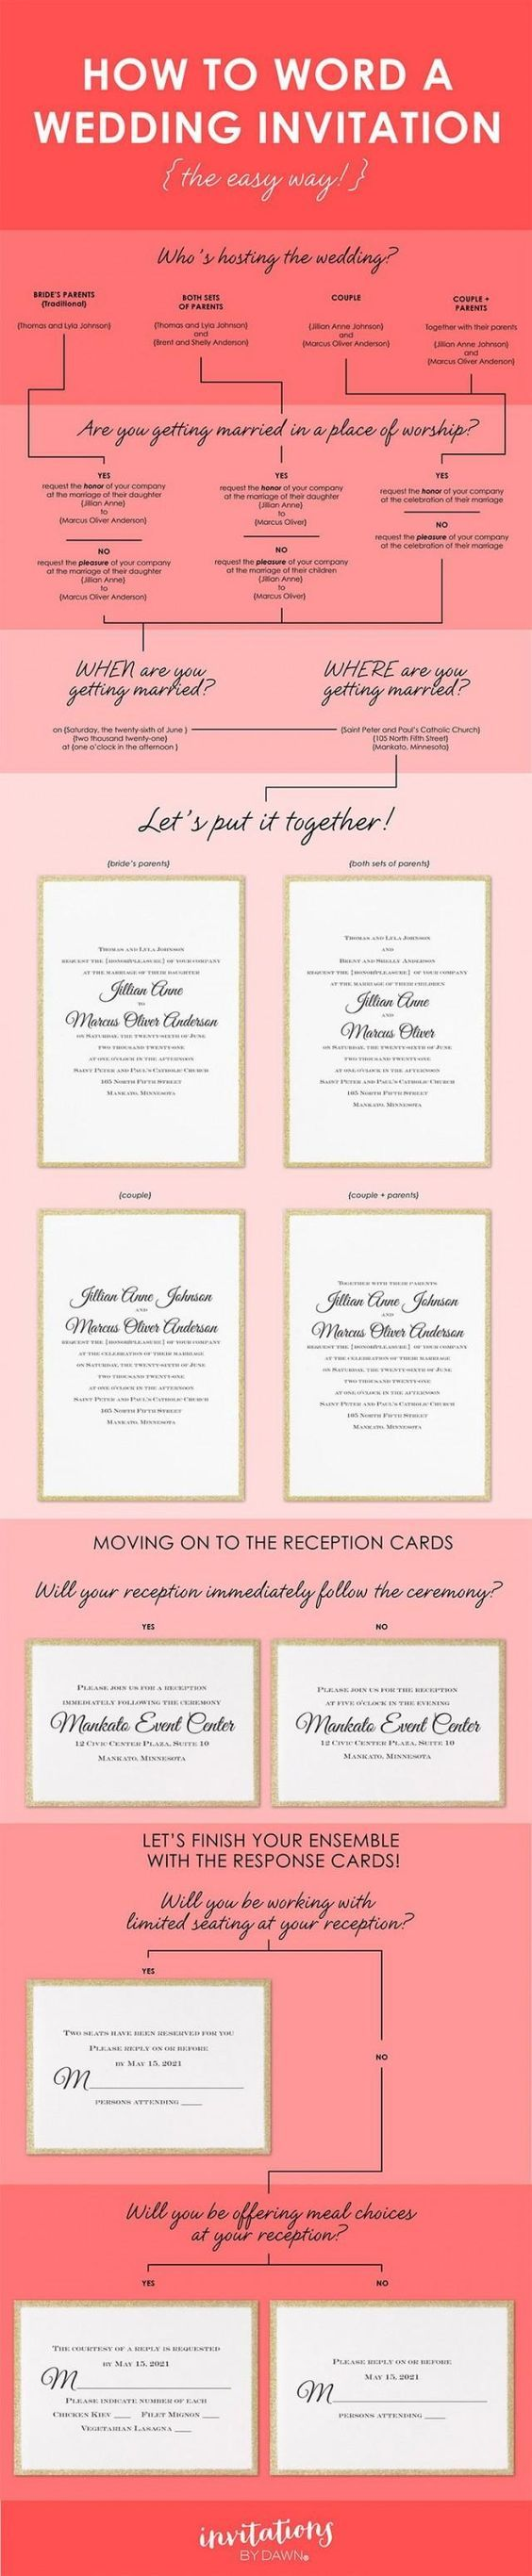 best 25 how to word wedding invitations ideas on pinterest